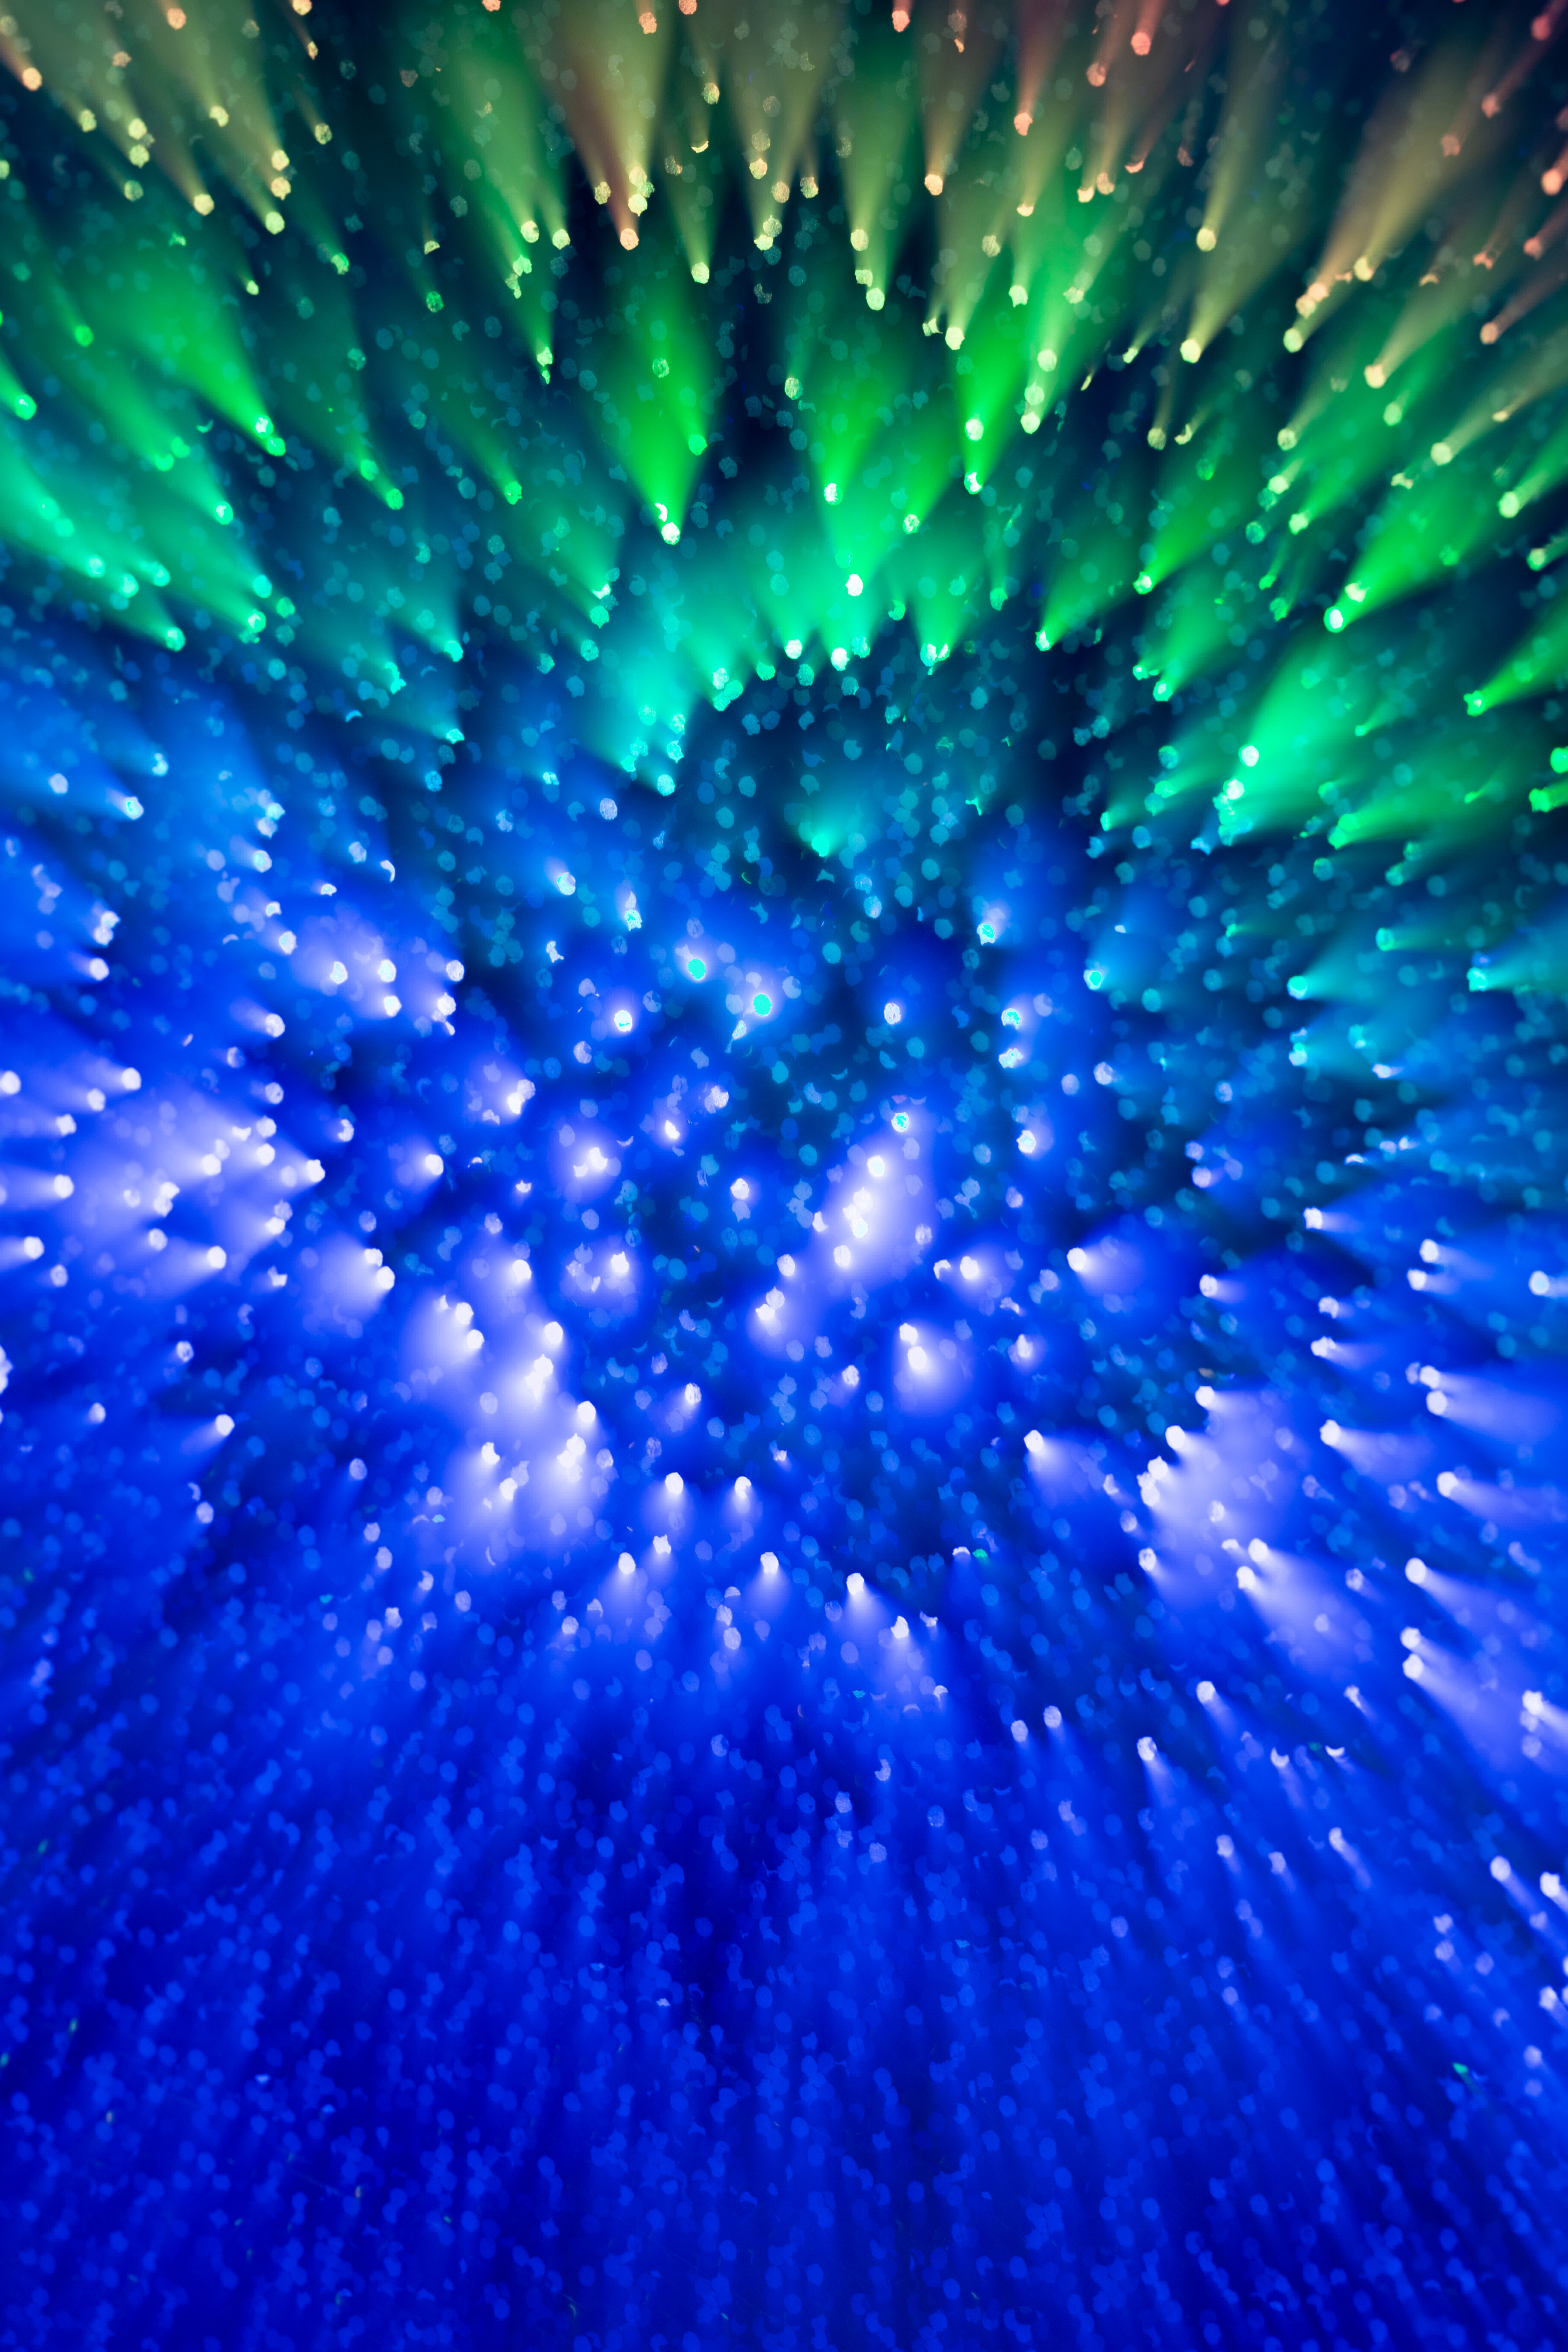 141555 download wallpaper Abstract, Glow, Lights, Beams, Rays, Bright, Multicolored, Motley screensavers and pictures for free